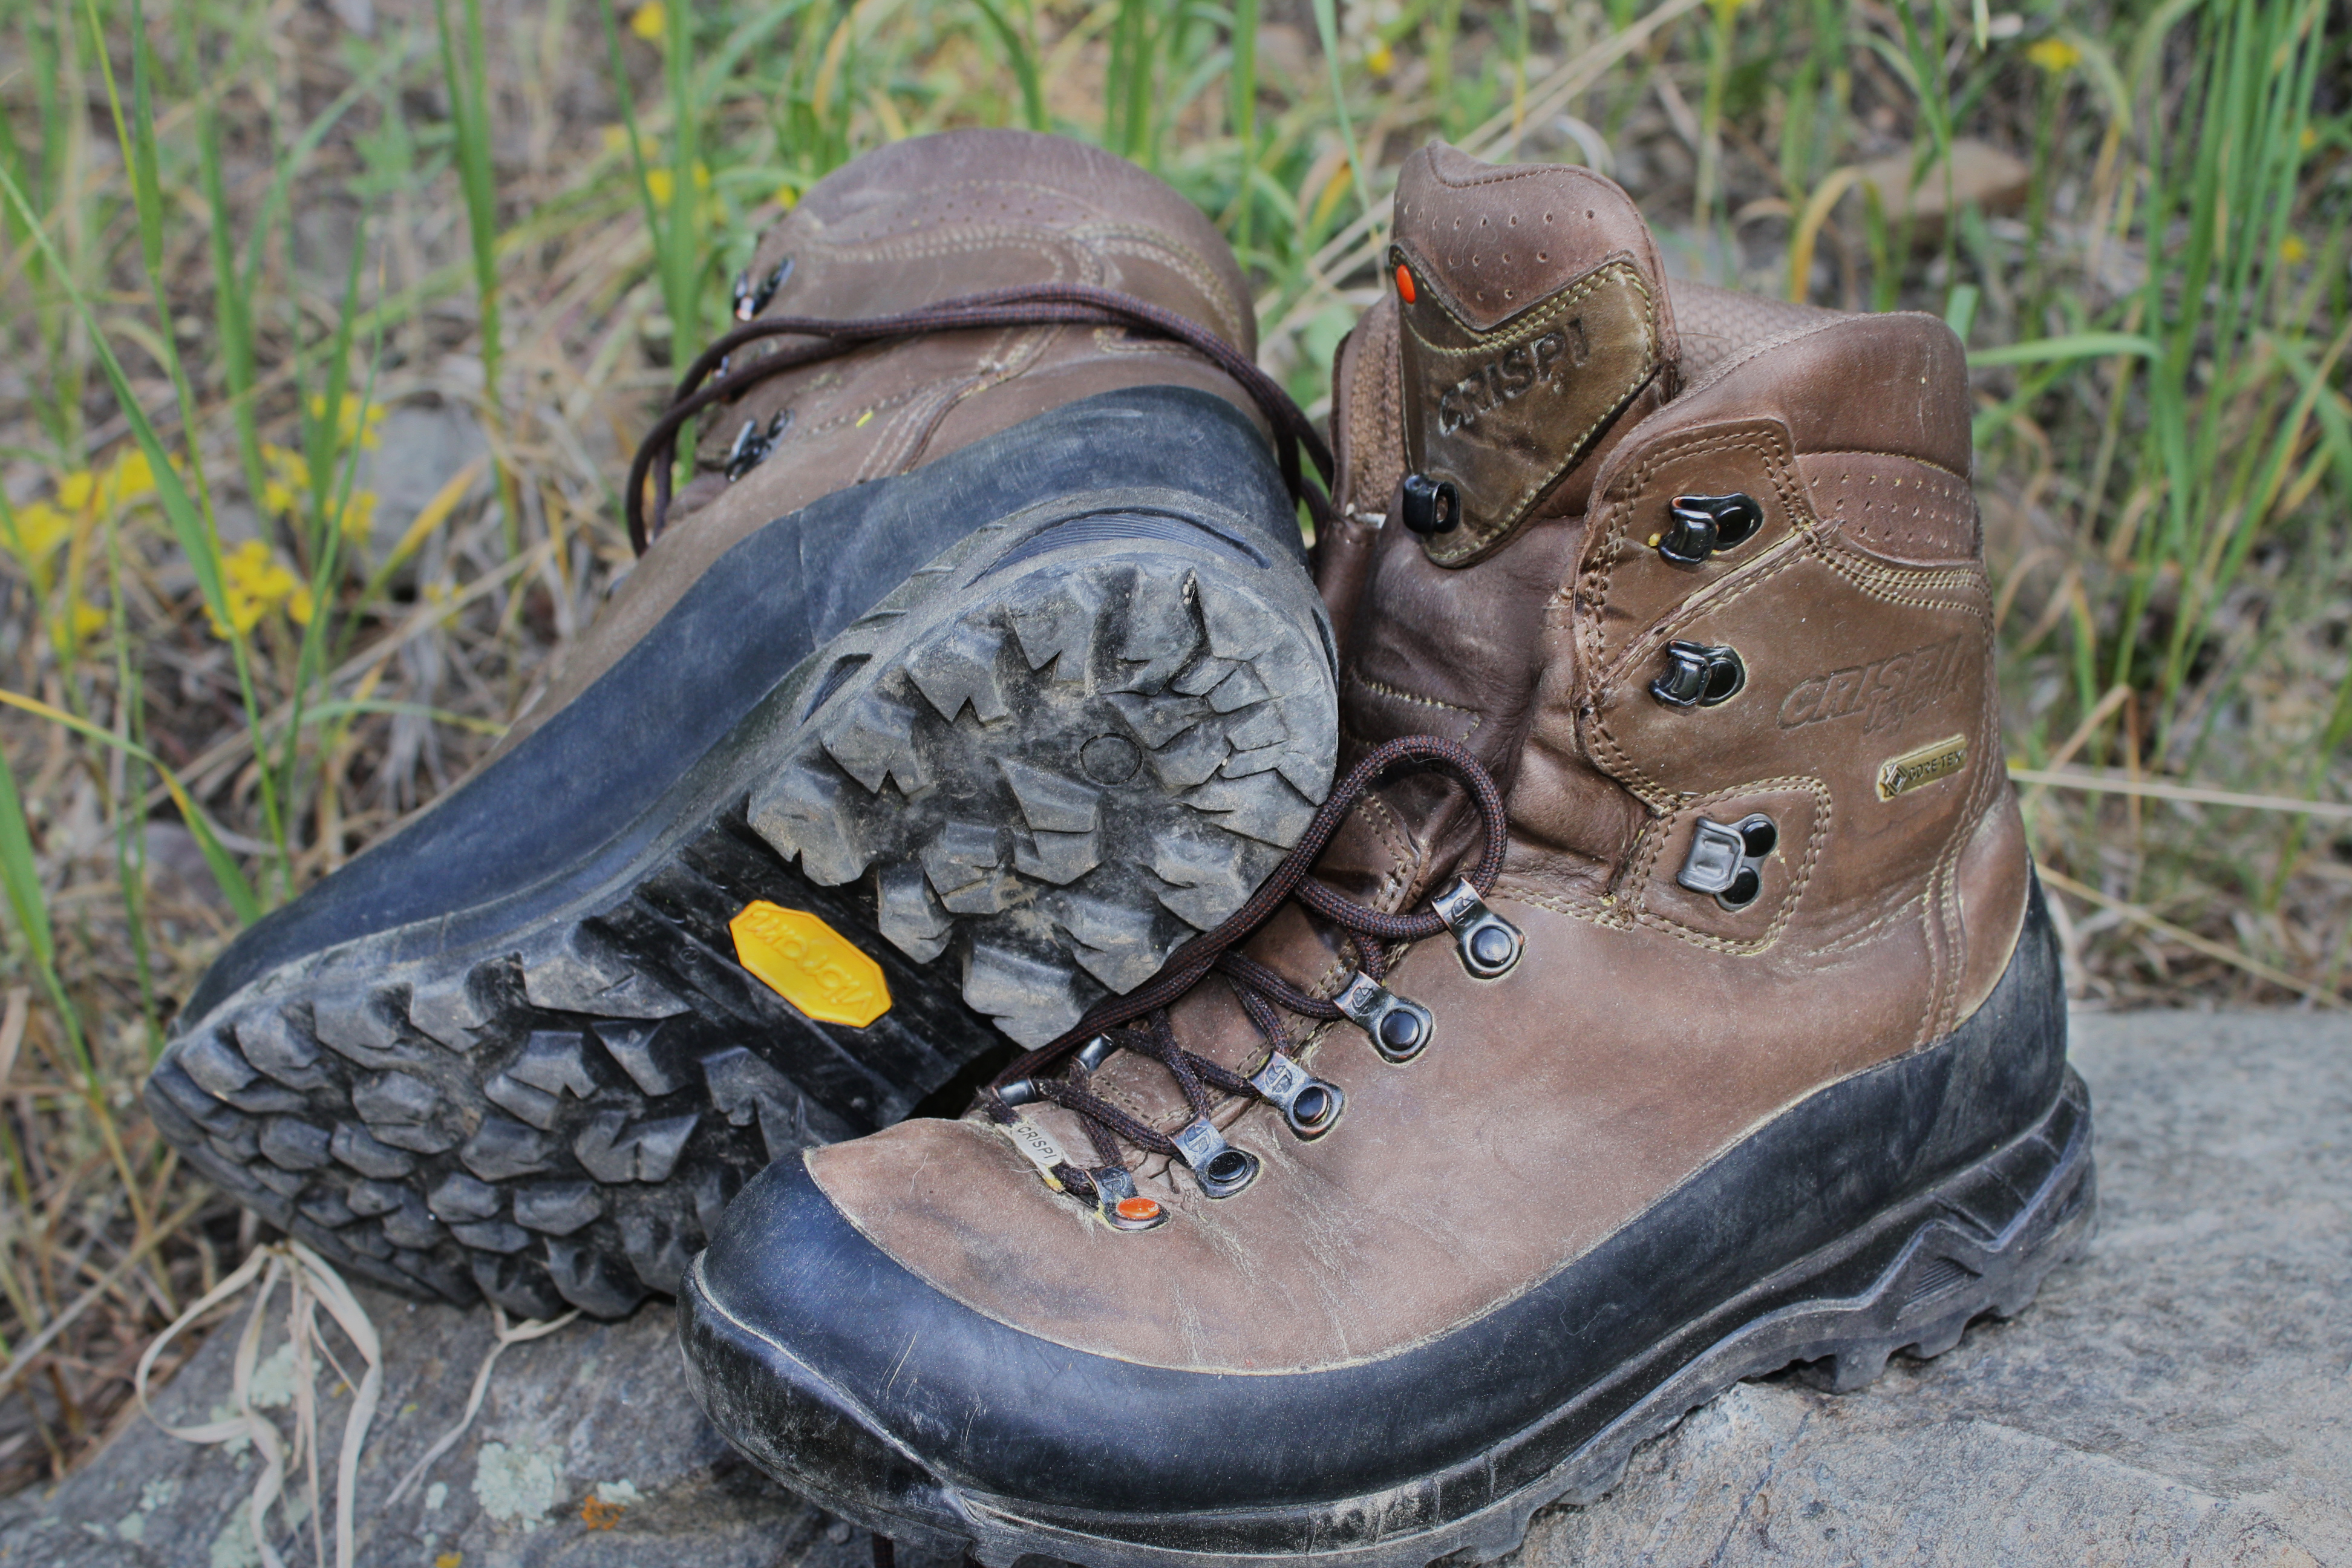 da2861c2f8a Used and Abused: Crispi Nevada GTX Hunting Boot Review | GearJunkie